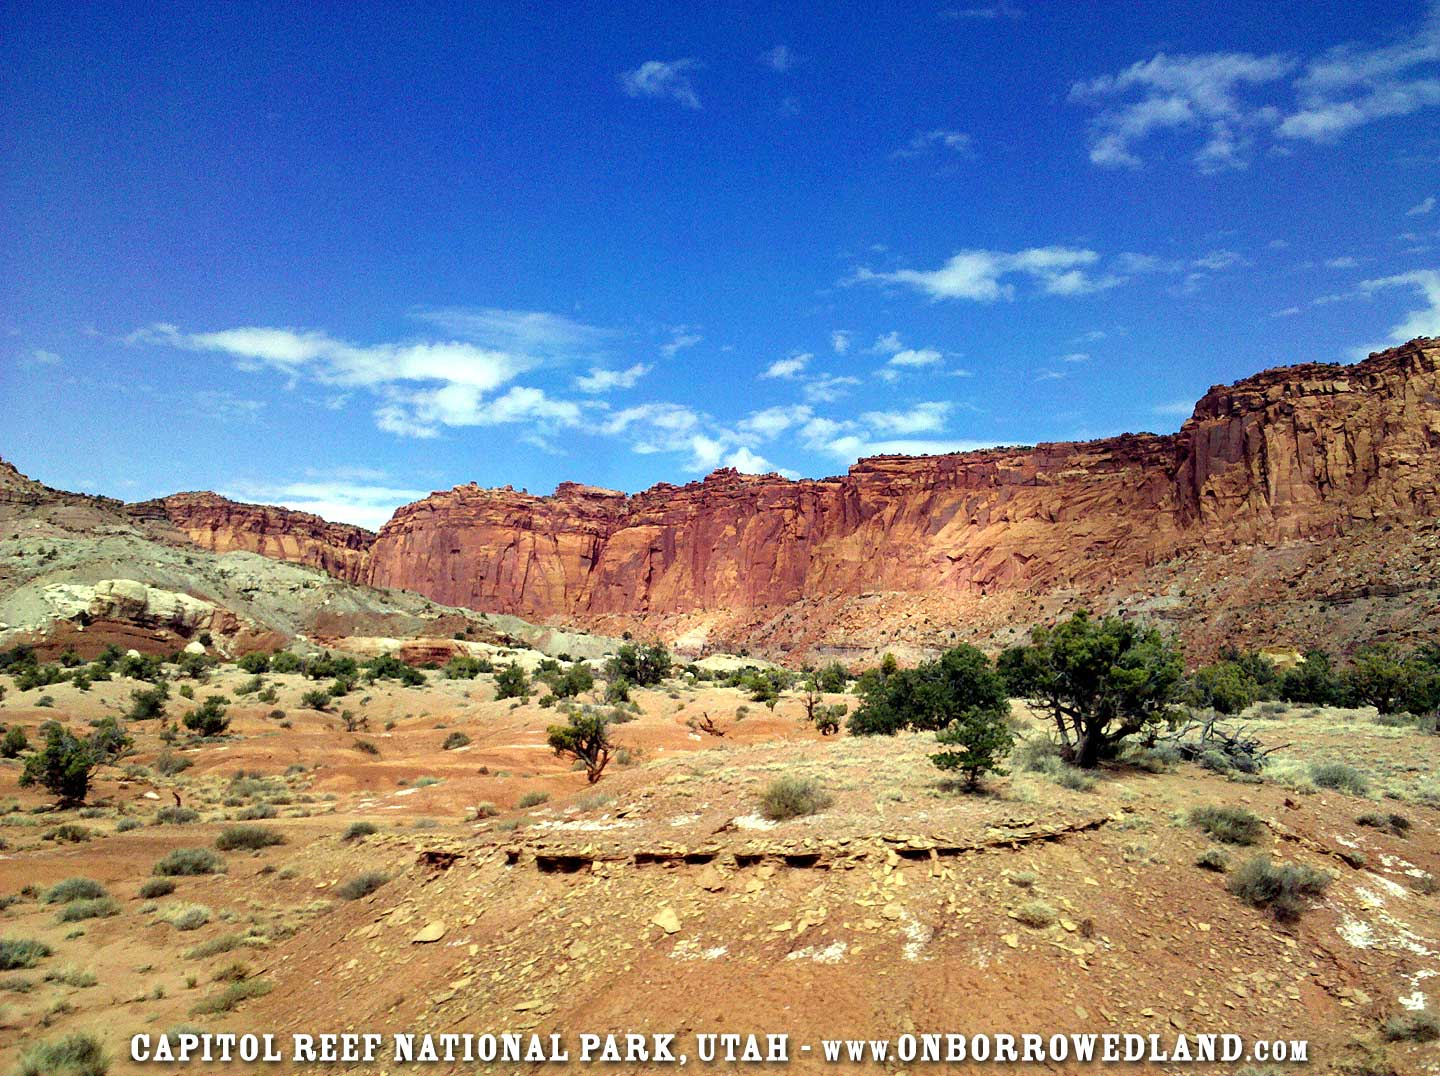 Capitol Reef National Park Utah On Borrowed Land